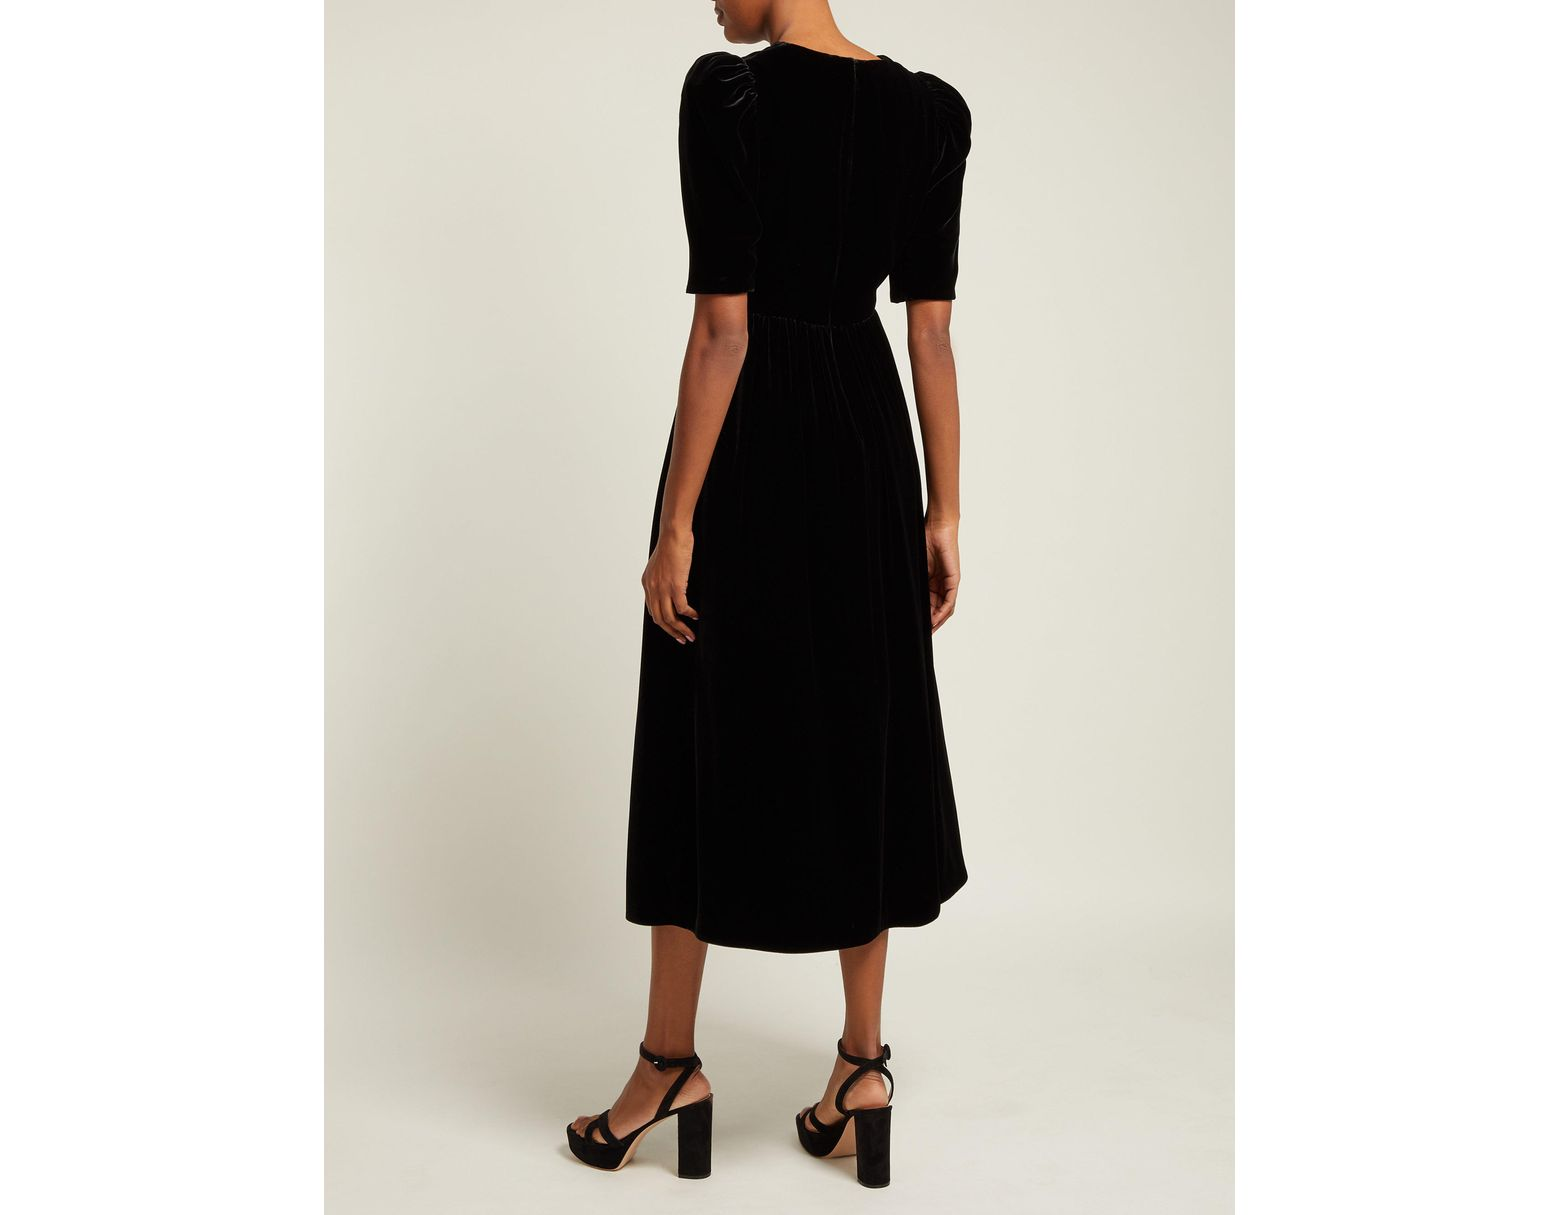 b13a16b1642 Gucci Velvet Dress in Black - Lyst